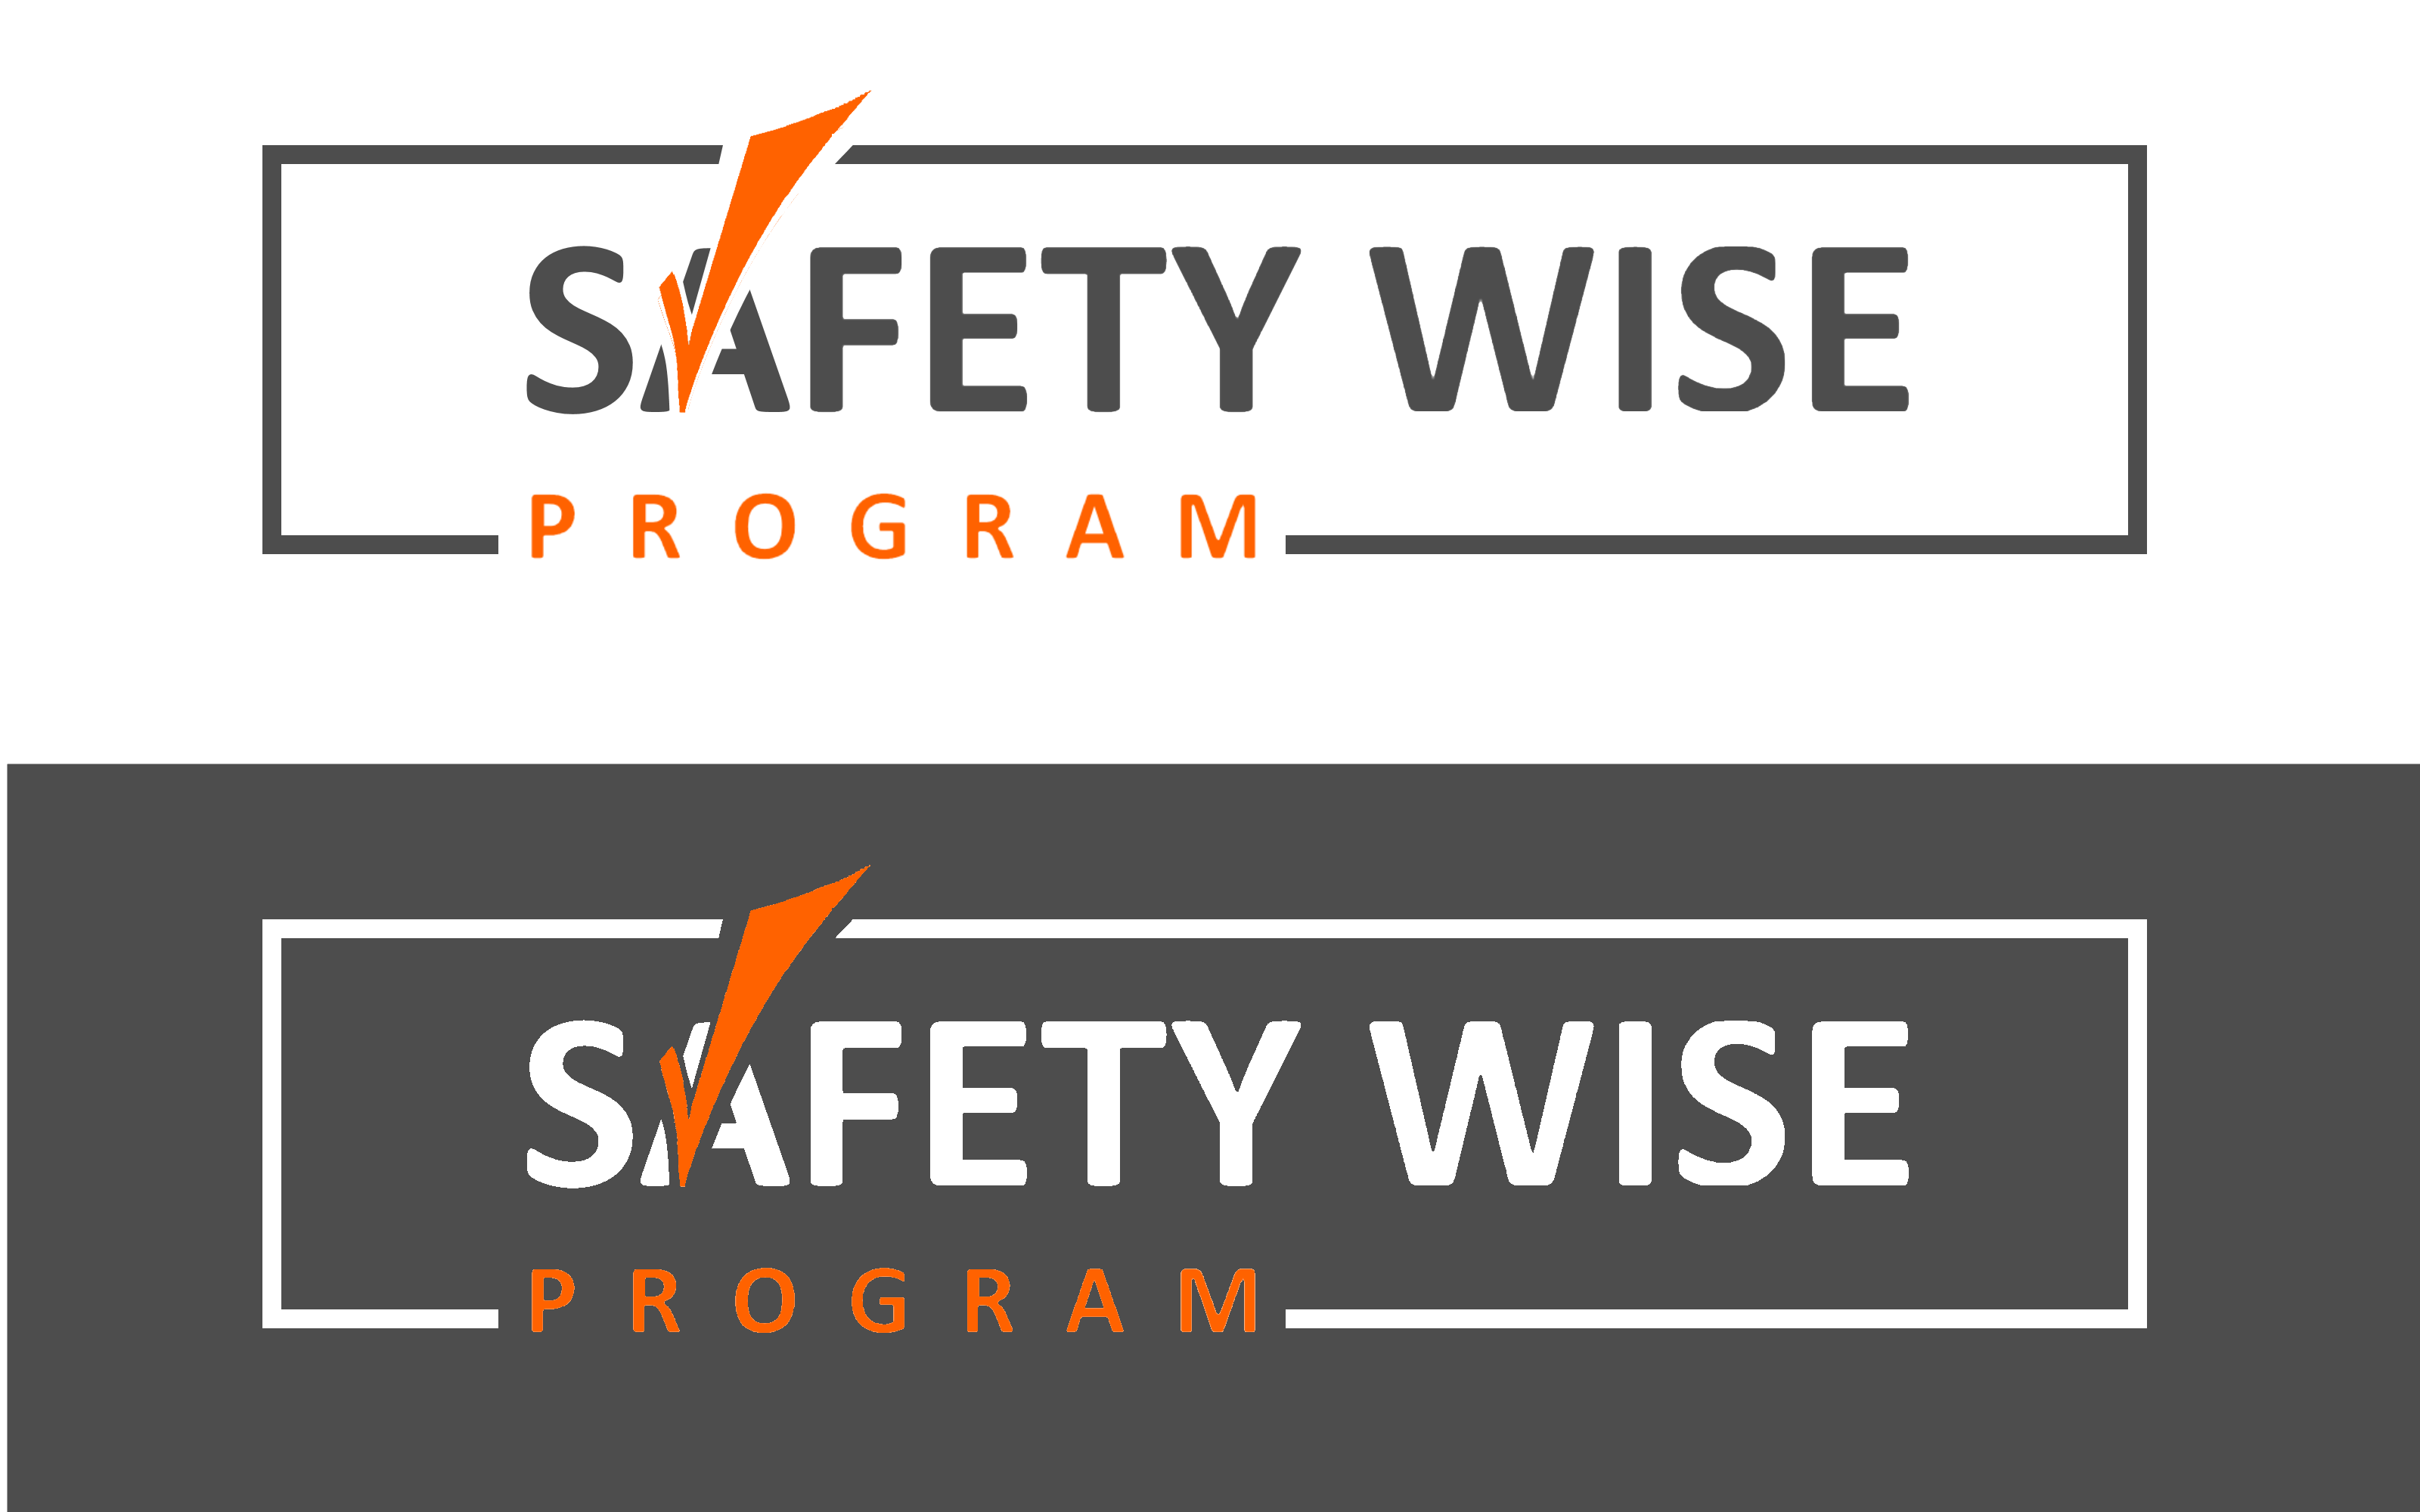 Logo Design by Roberto Bassi - Entry No. 221 in the Logo Design Contest New Logo Design for Safety Wise Program.